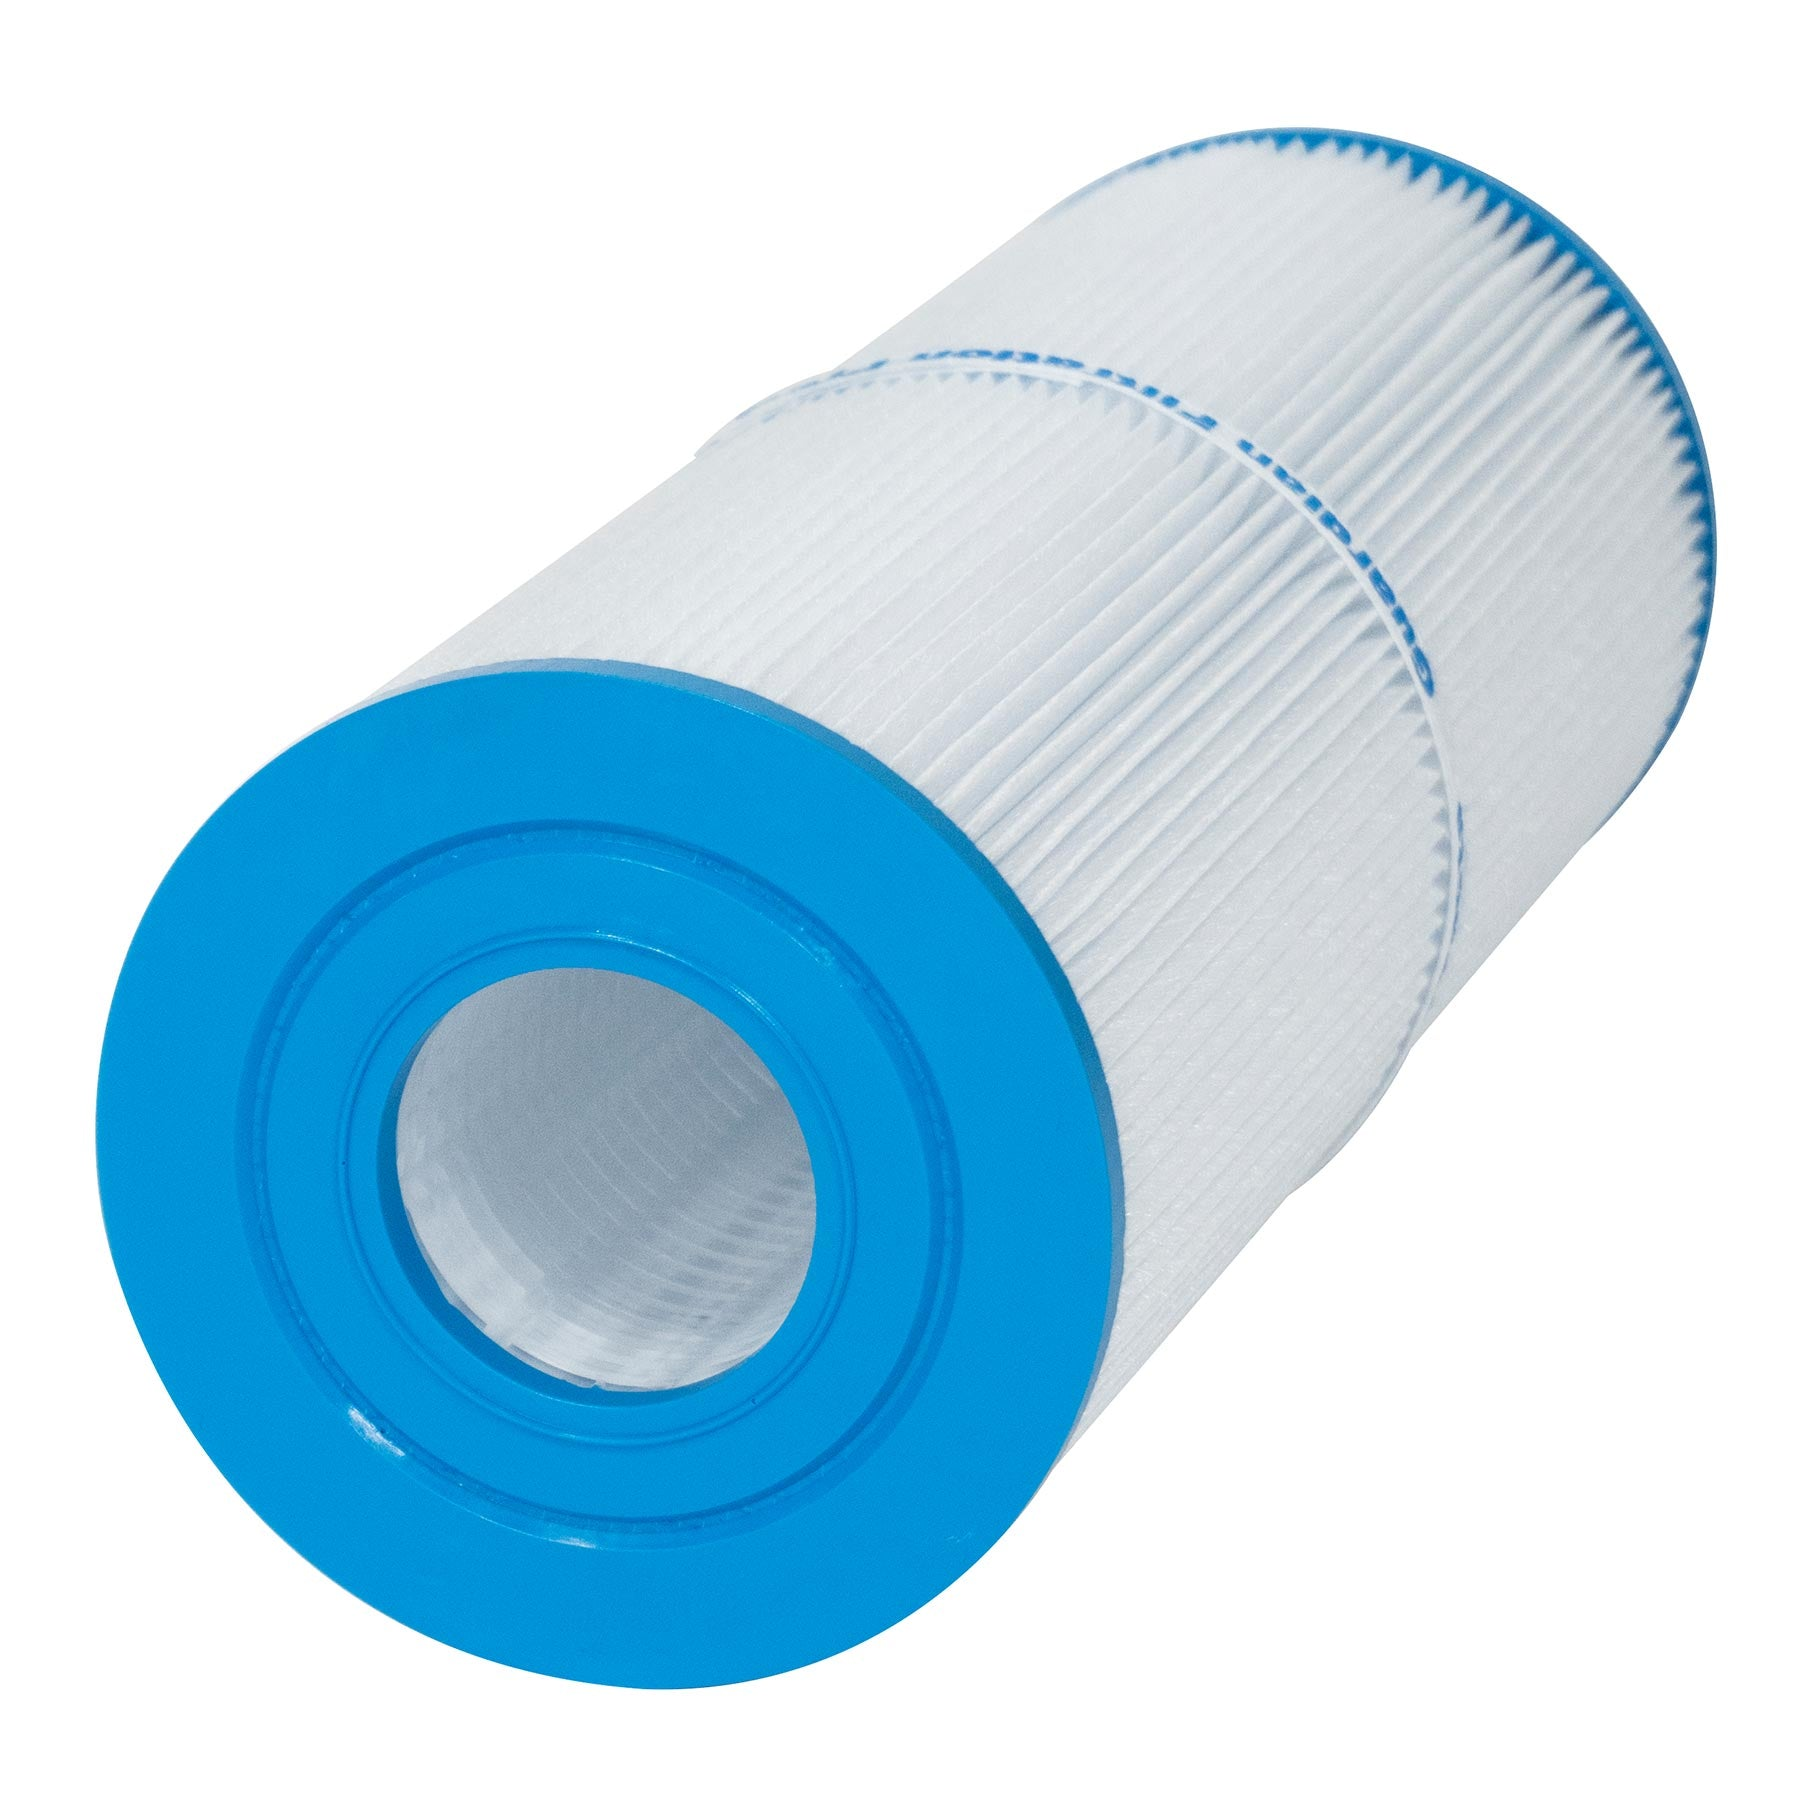 Replaces Unicel C-4326, Pleatco PRB25-IN • Pool & Spa Filter Cartridge-Filter Cartridge-FilterDeal.com